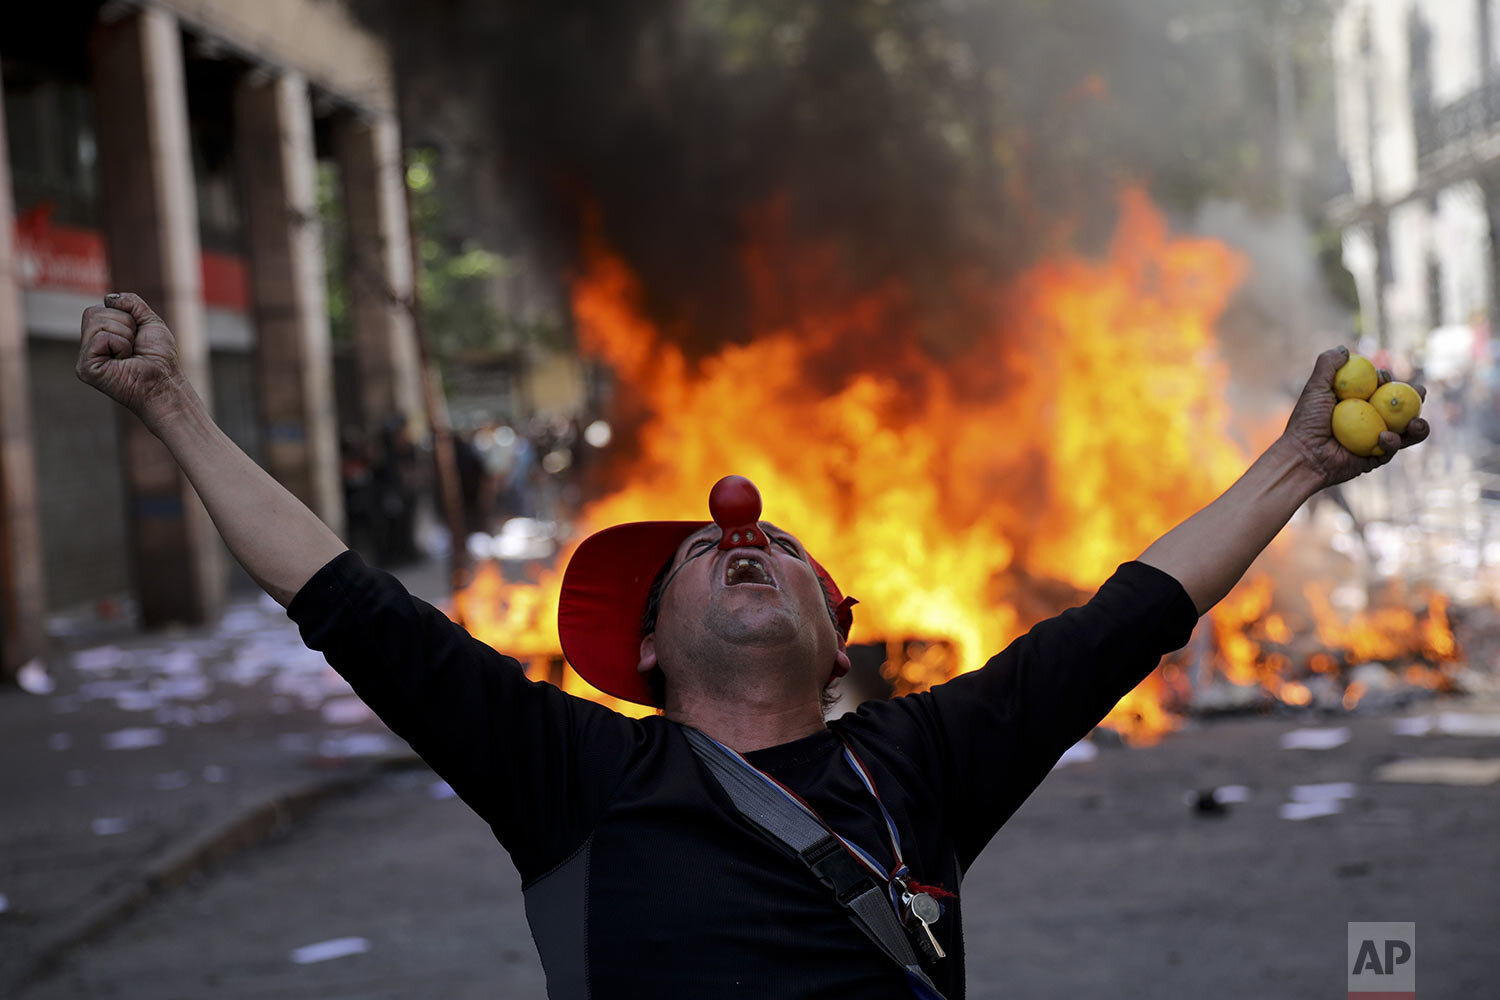 An anti-government demonstrator screams in font of a burning barricade in Santiago, Chile, Tuesday, Oct. 22, 2019. (AP Photo/Rodrigo Abd)